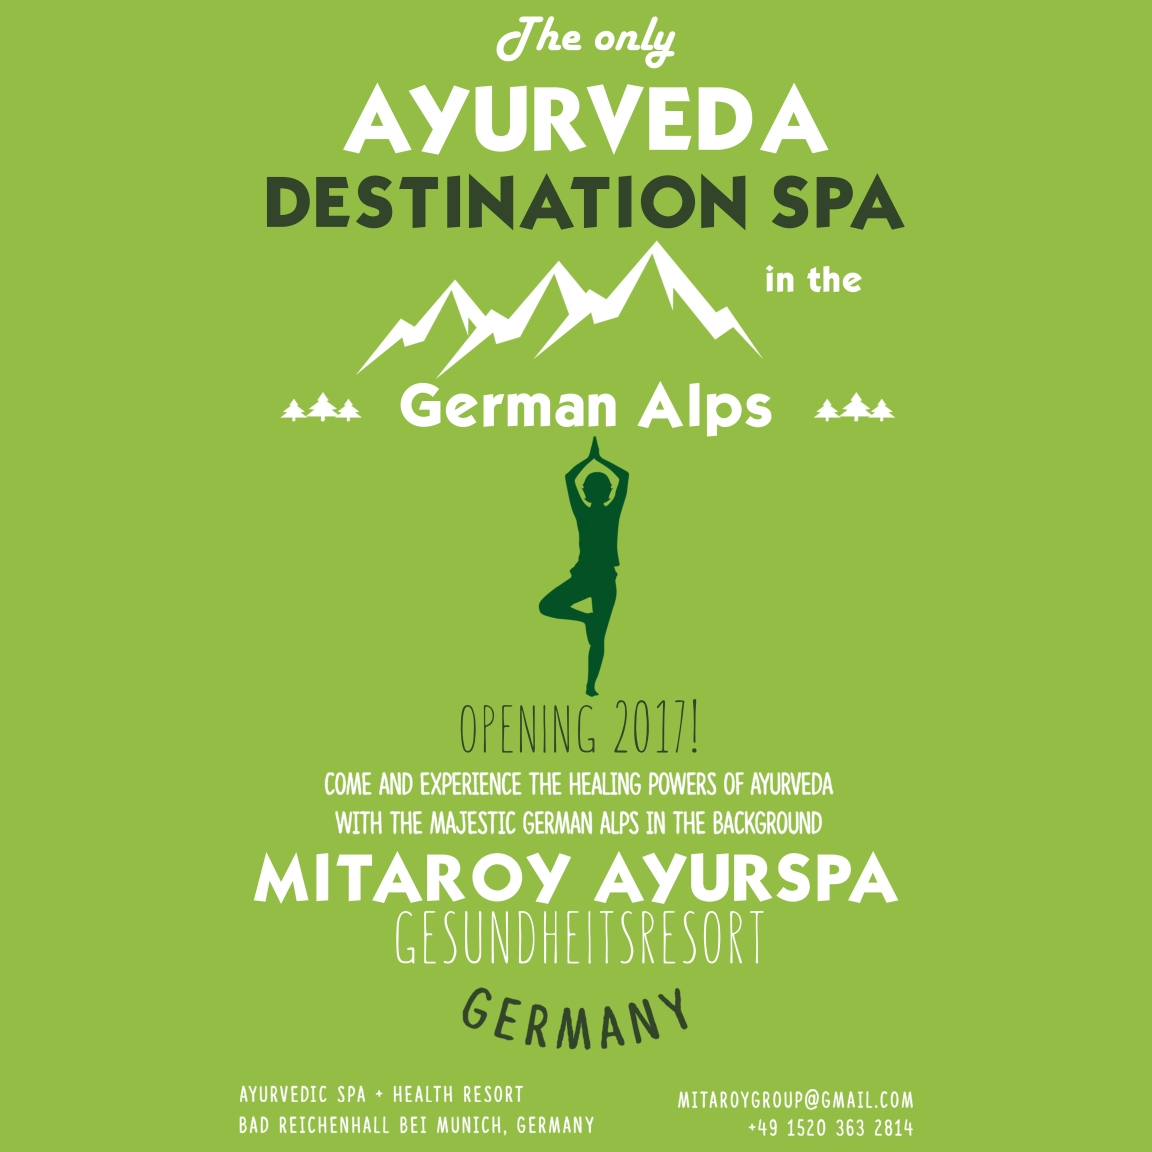 AYURVEDA 210mm x 210mm FULL HD